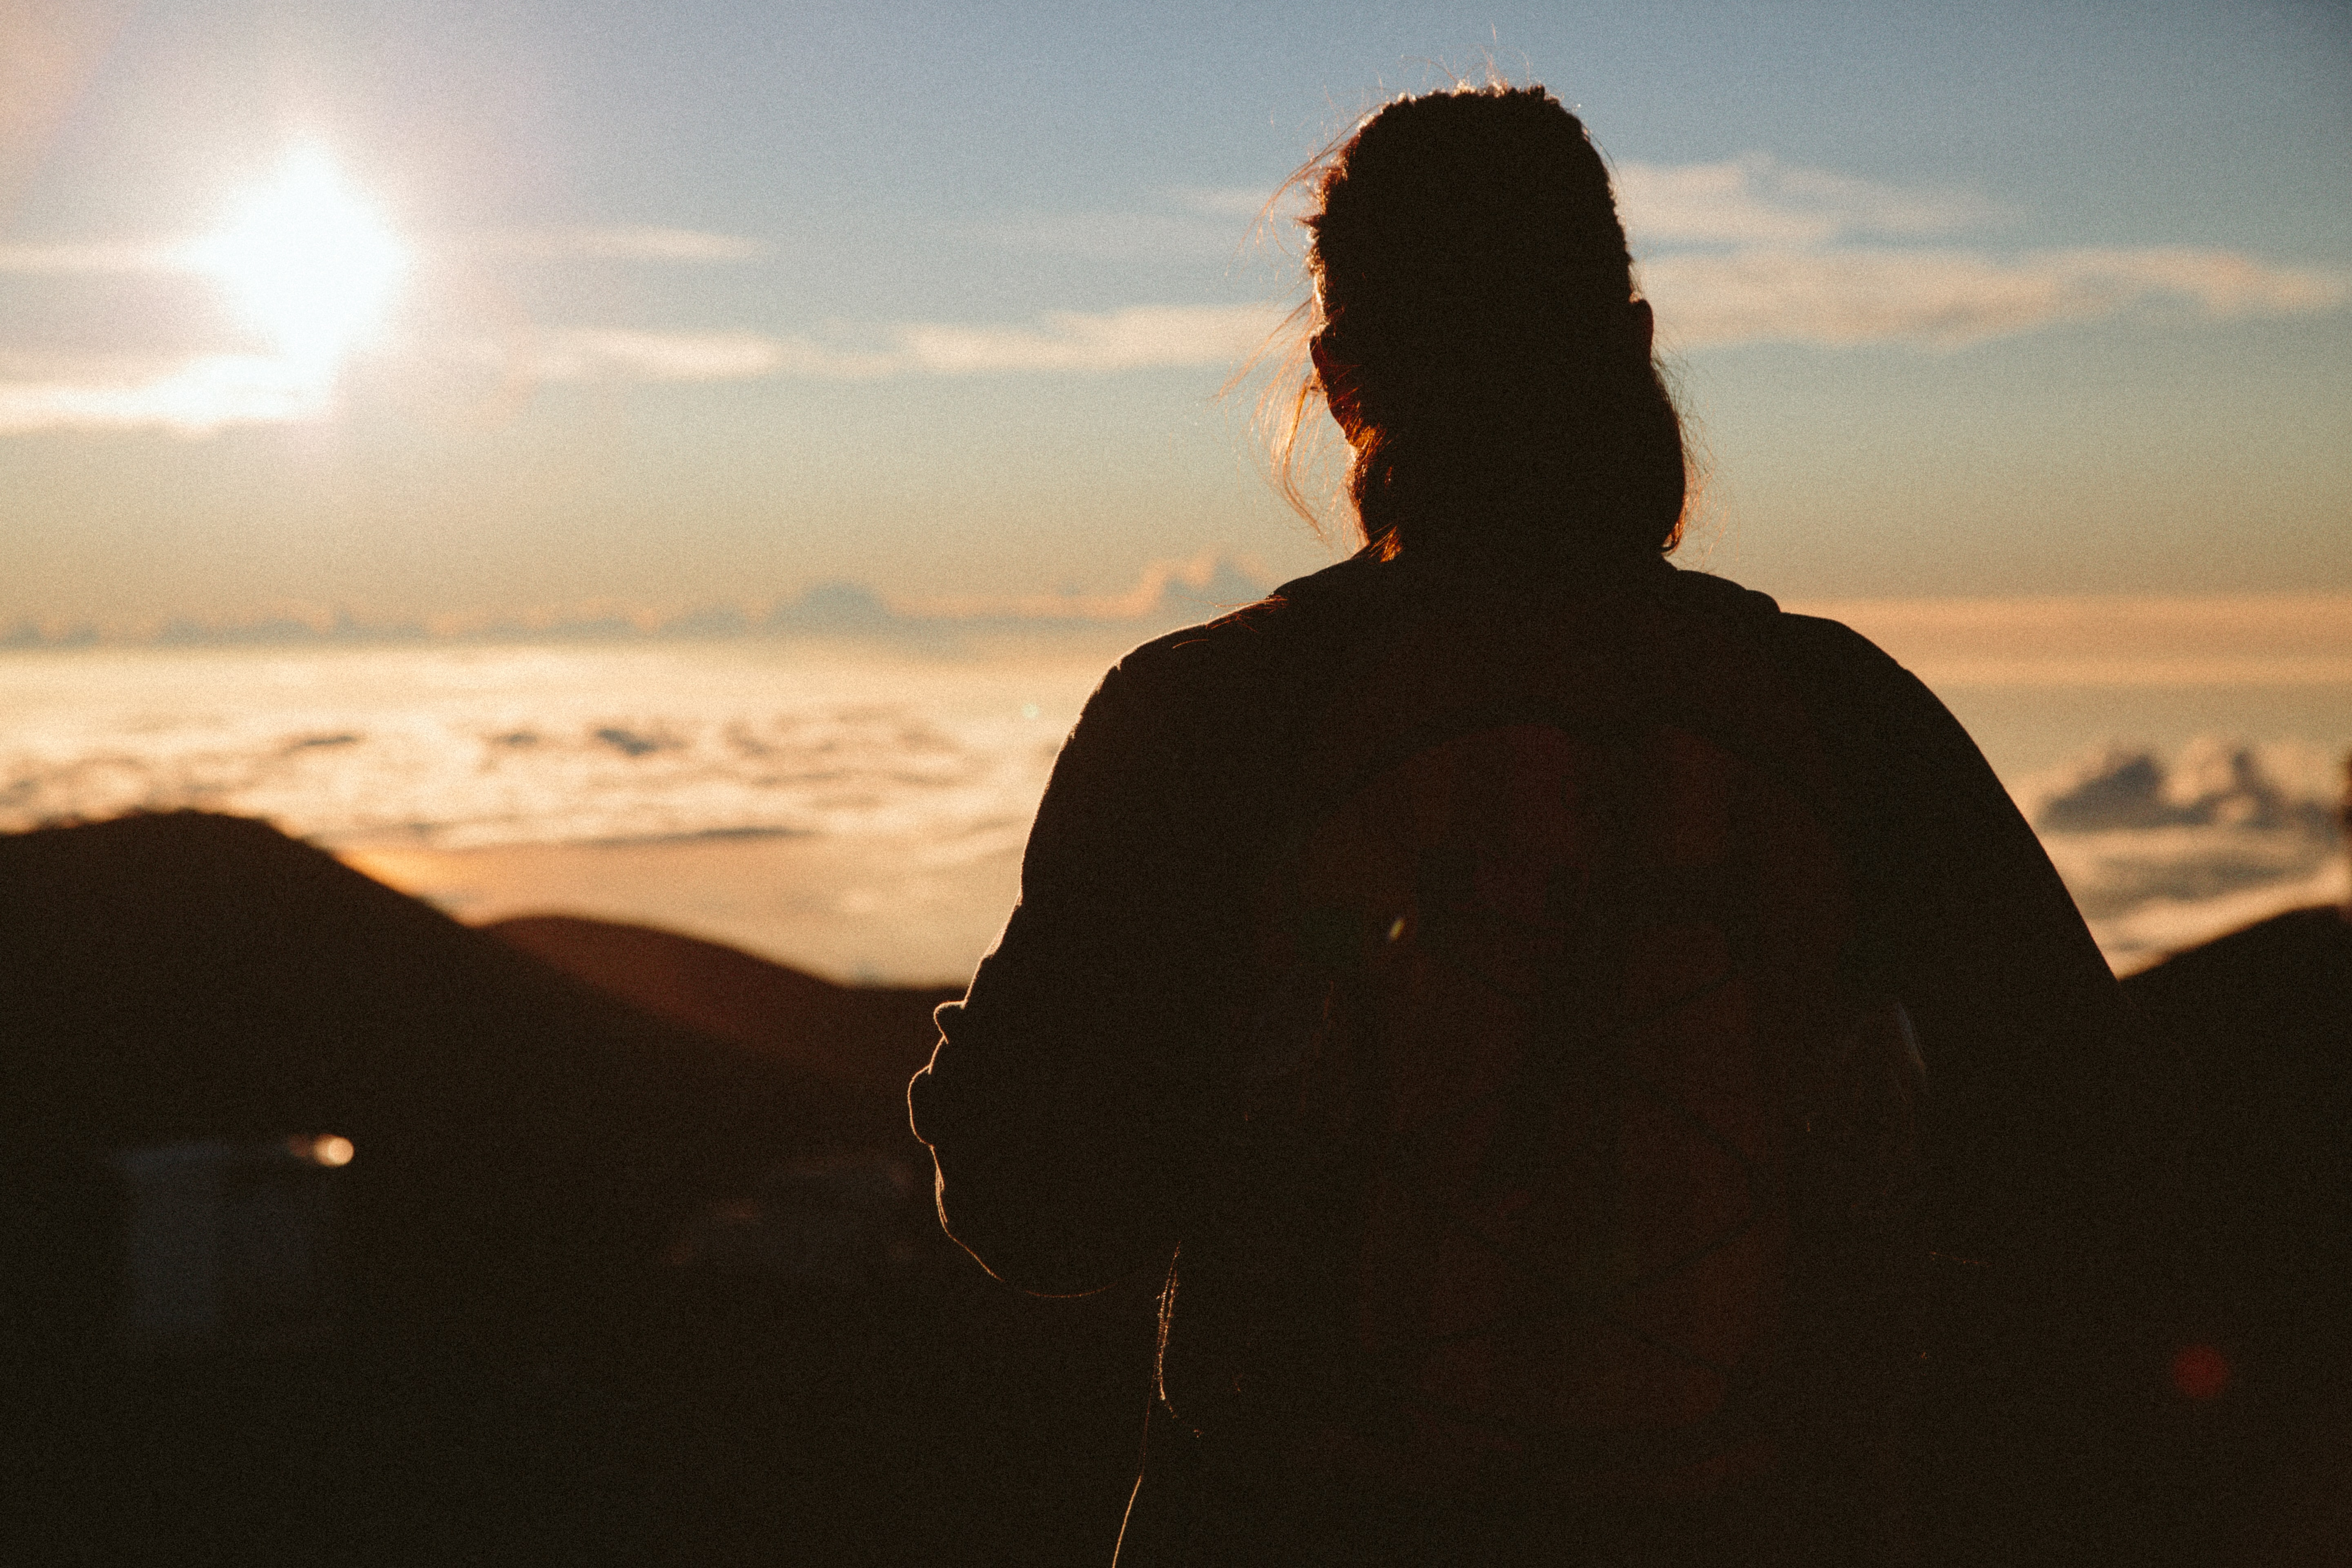 silhouette of woman facing hills